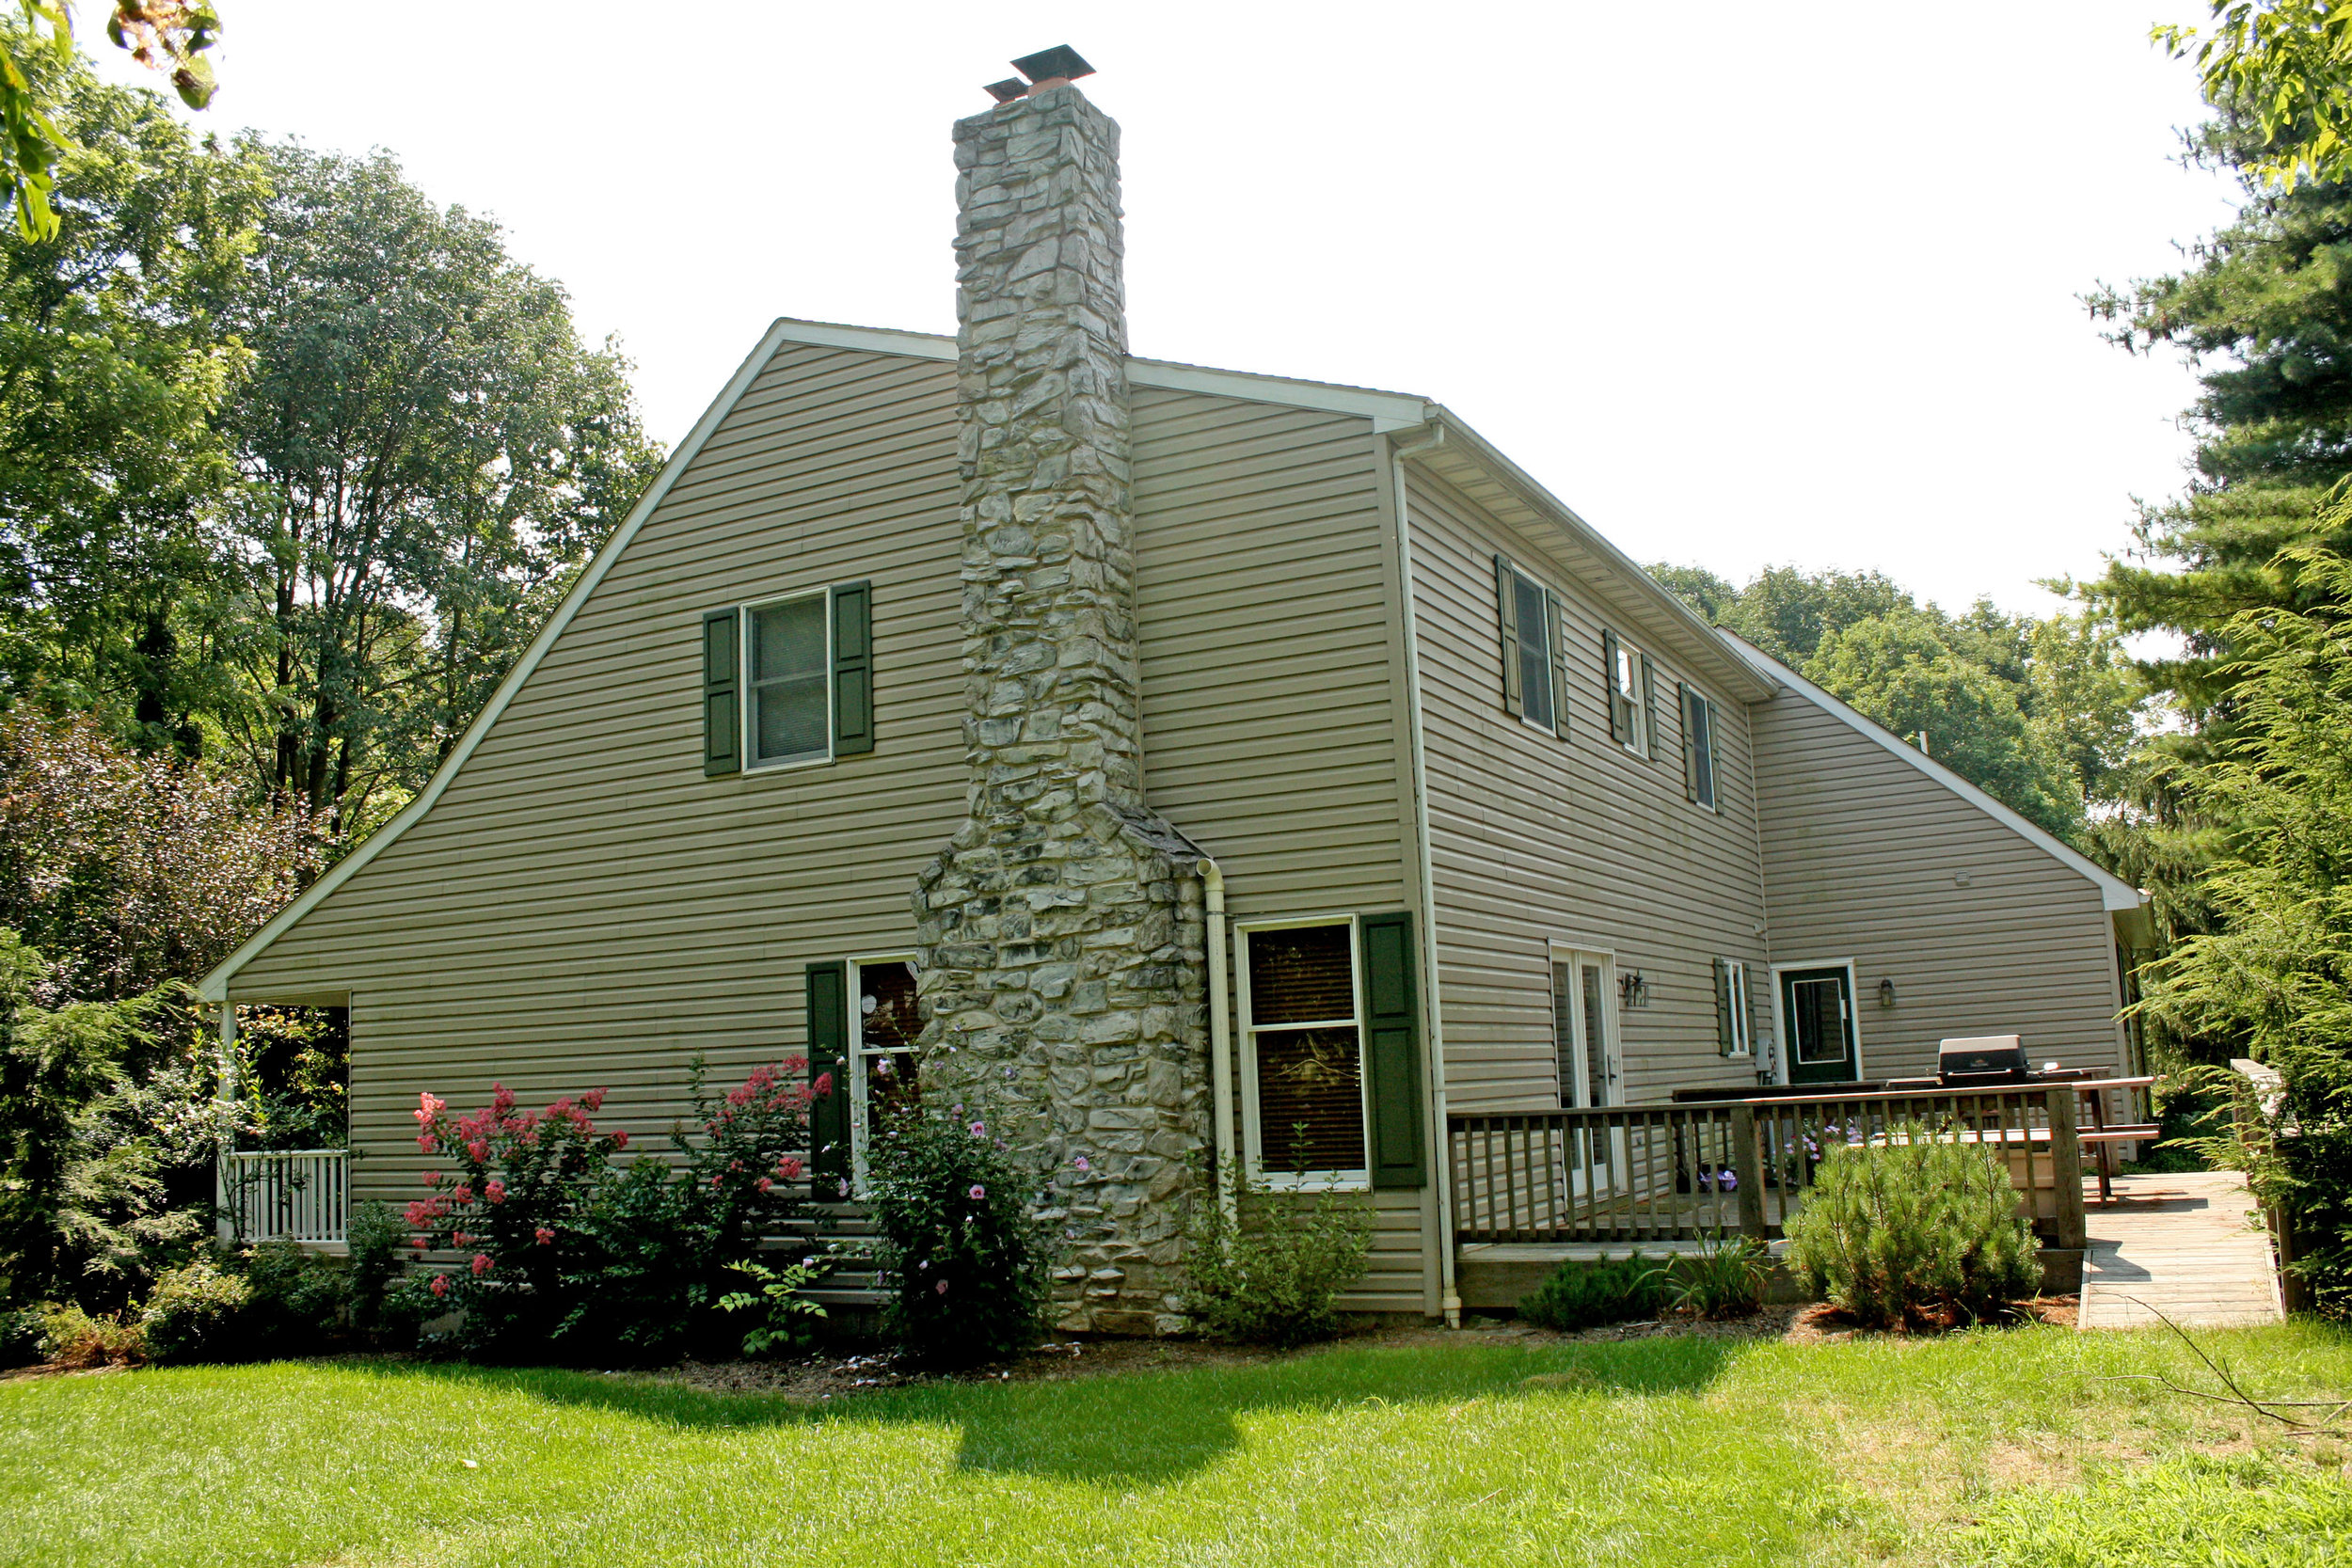 new-home-exterior-rear-view.jpg